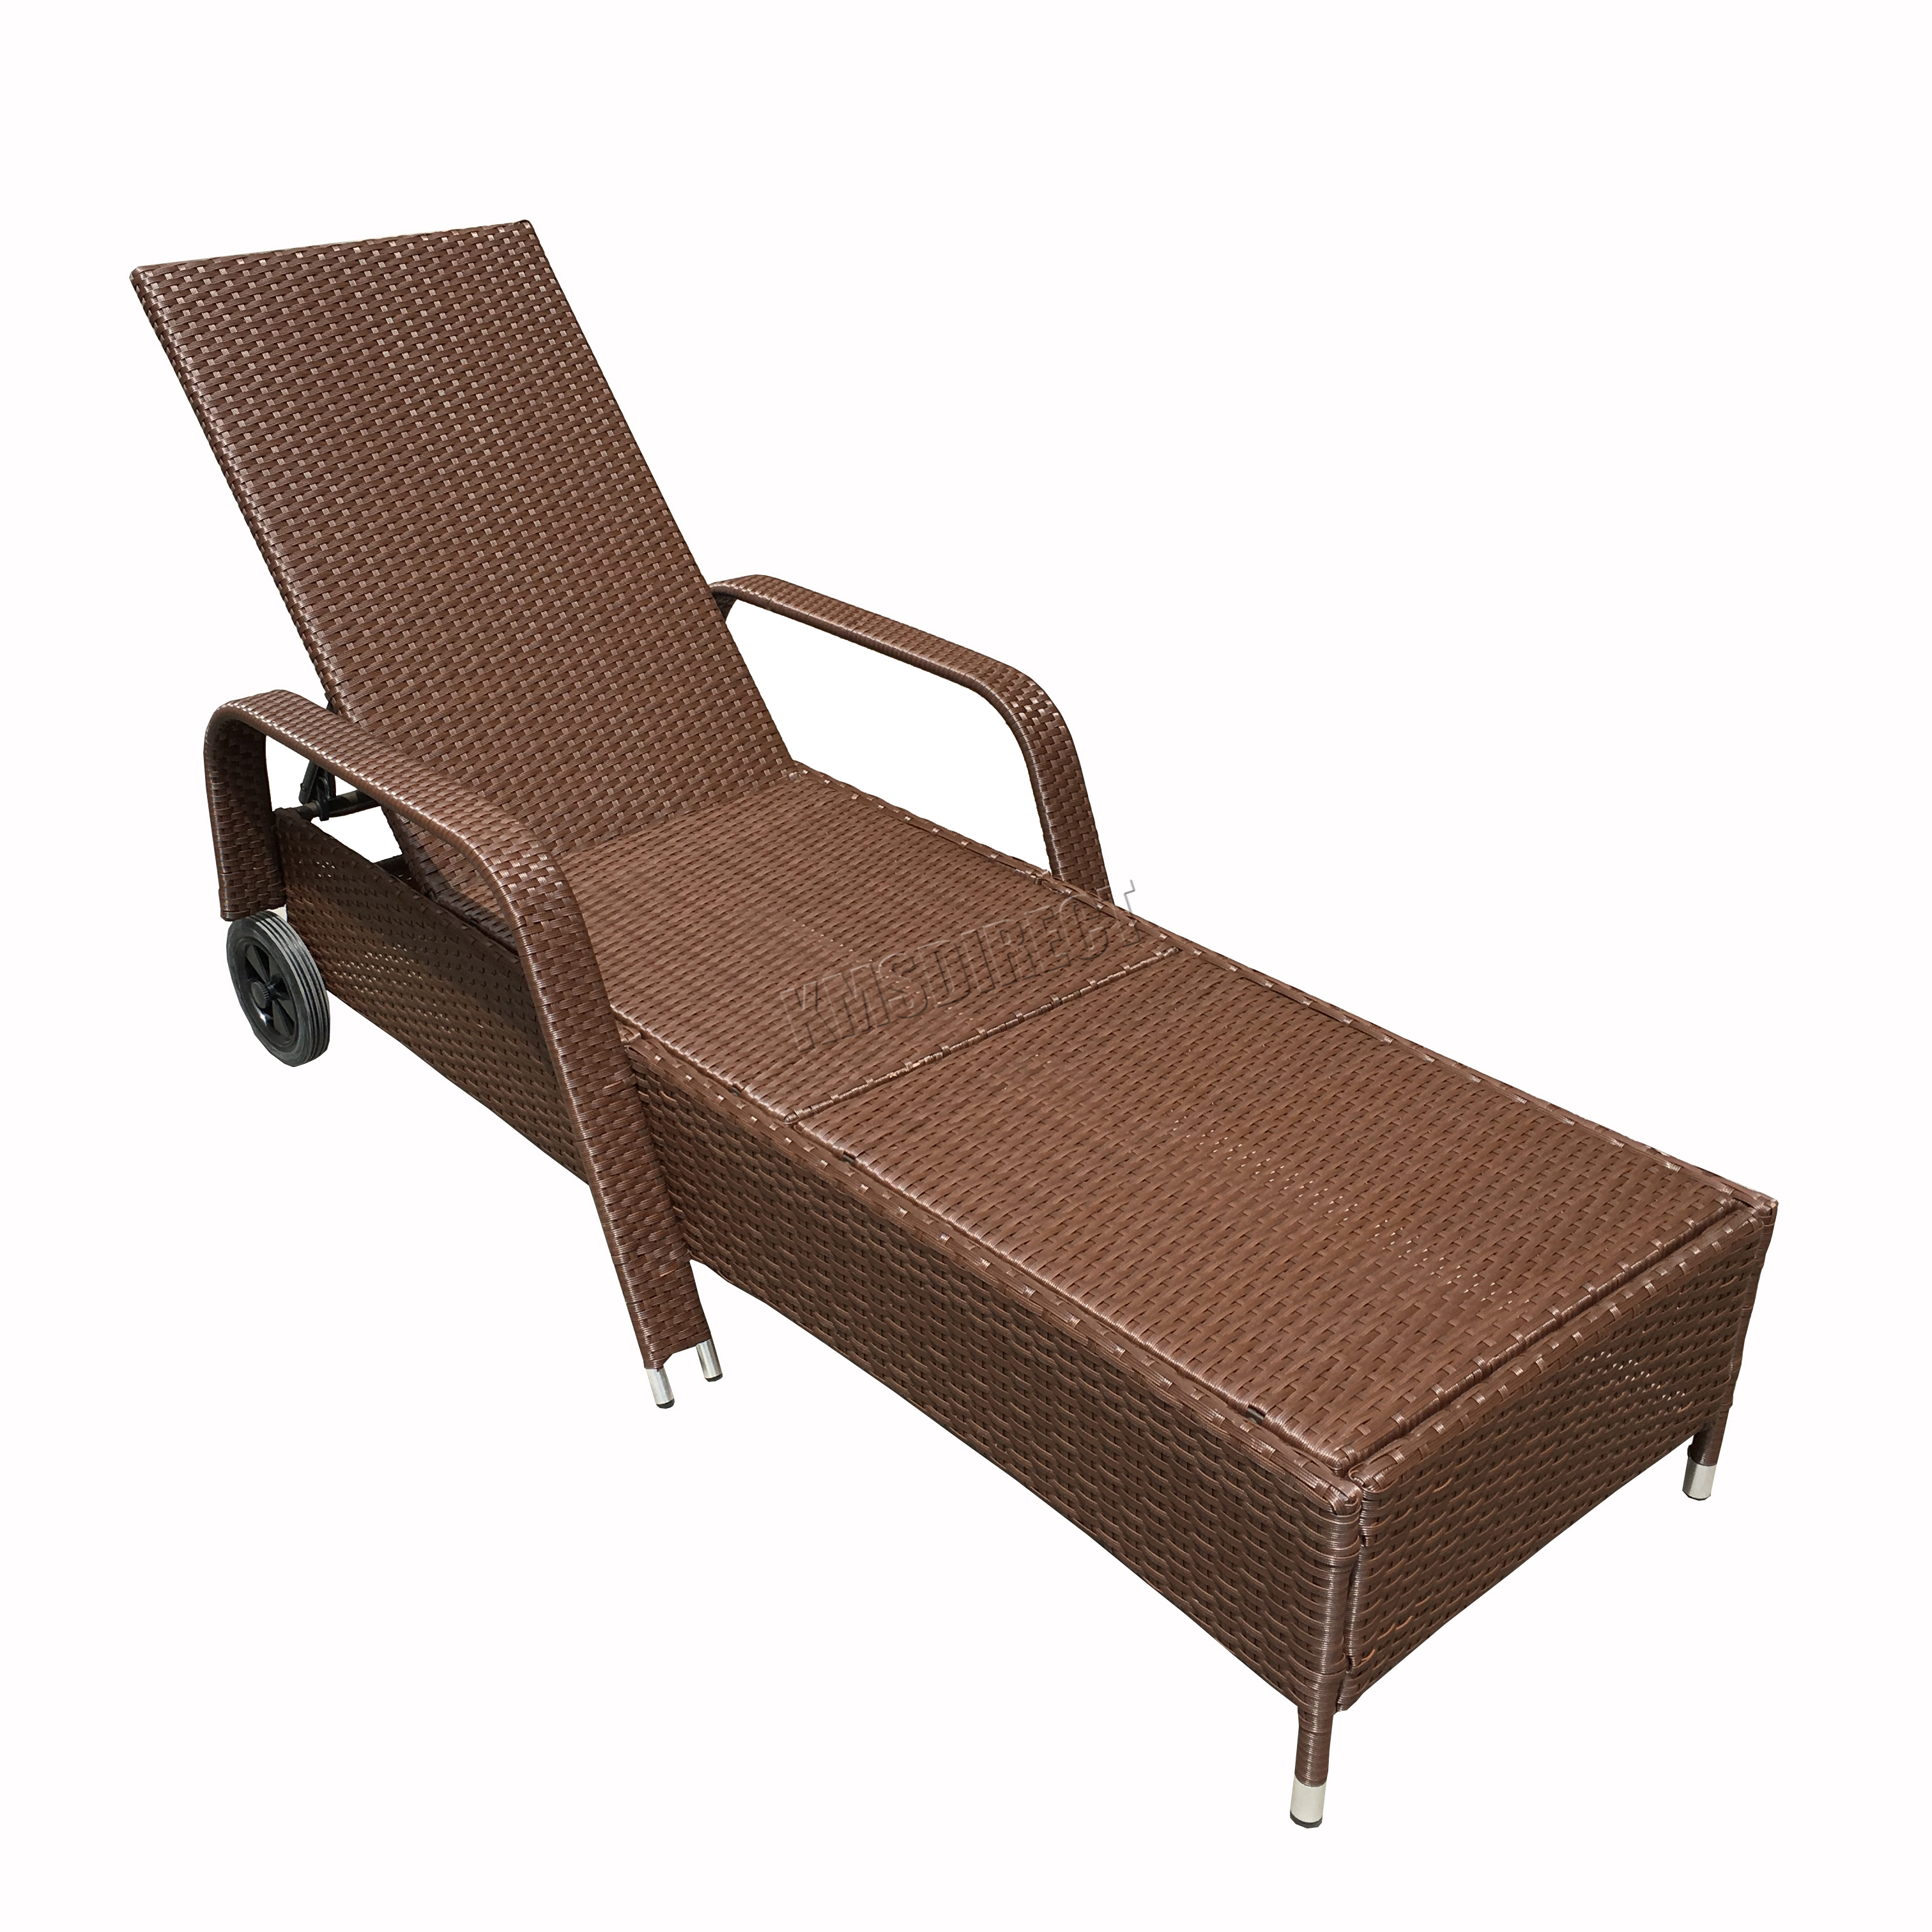 Westwood Rattan Day Chair Recliner Sun Bed Lounger Outdoor